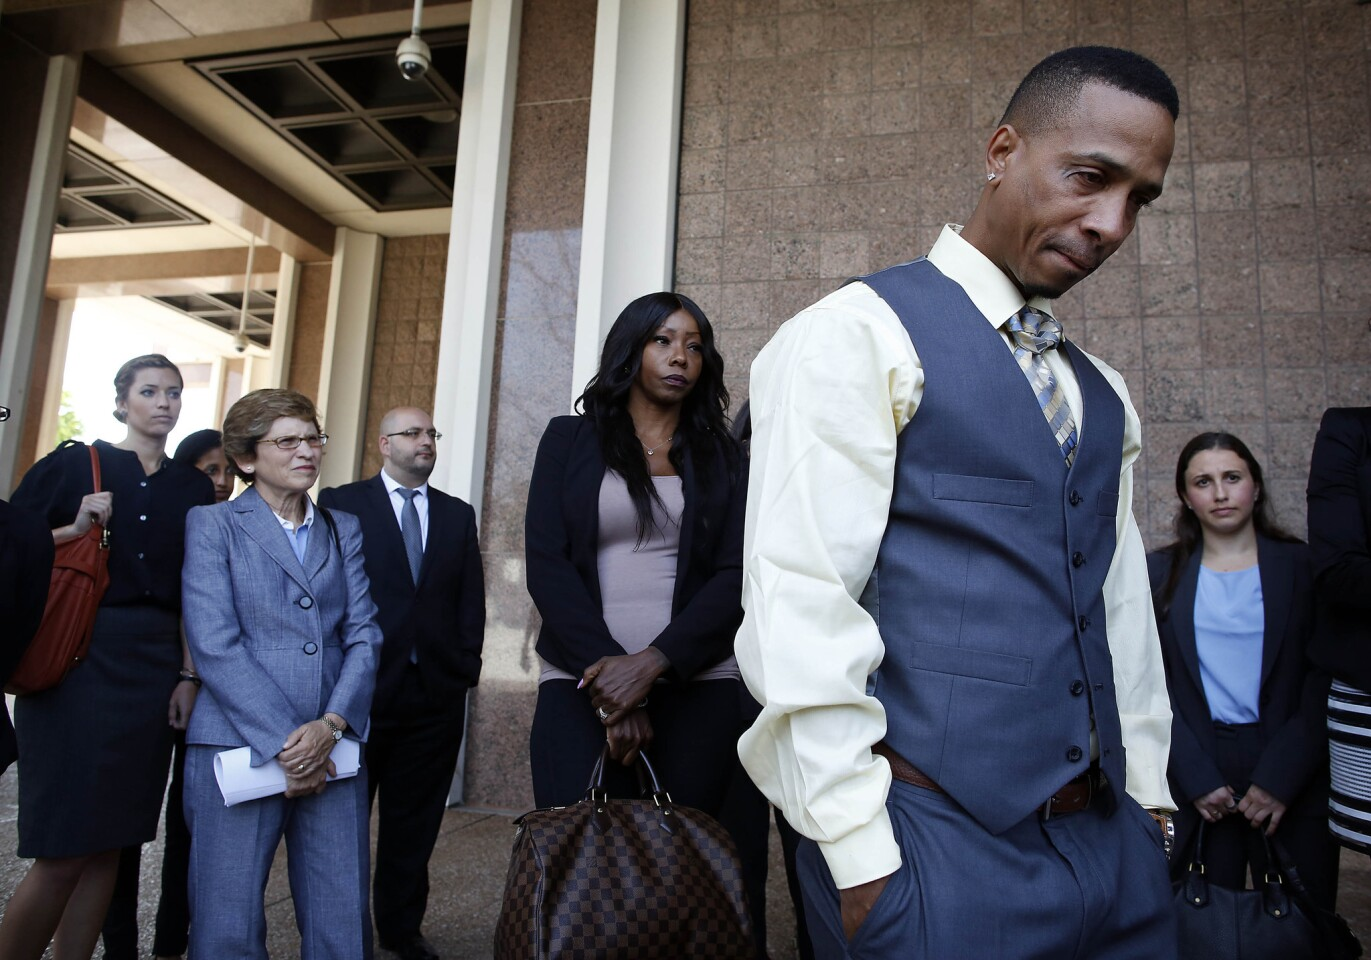 Obie Anthony, right, is surrounded by family and his legal team after being awarded more than $8 million for a wrongful conviction.